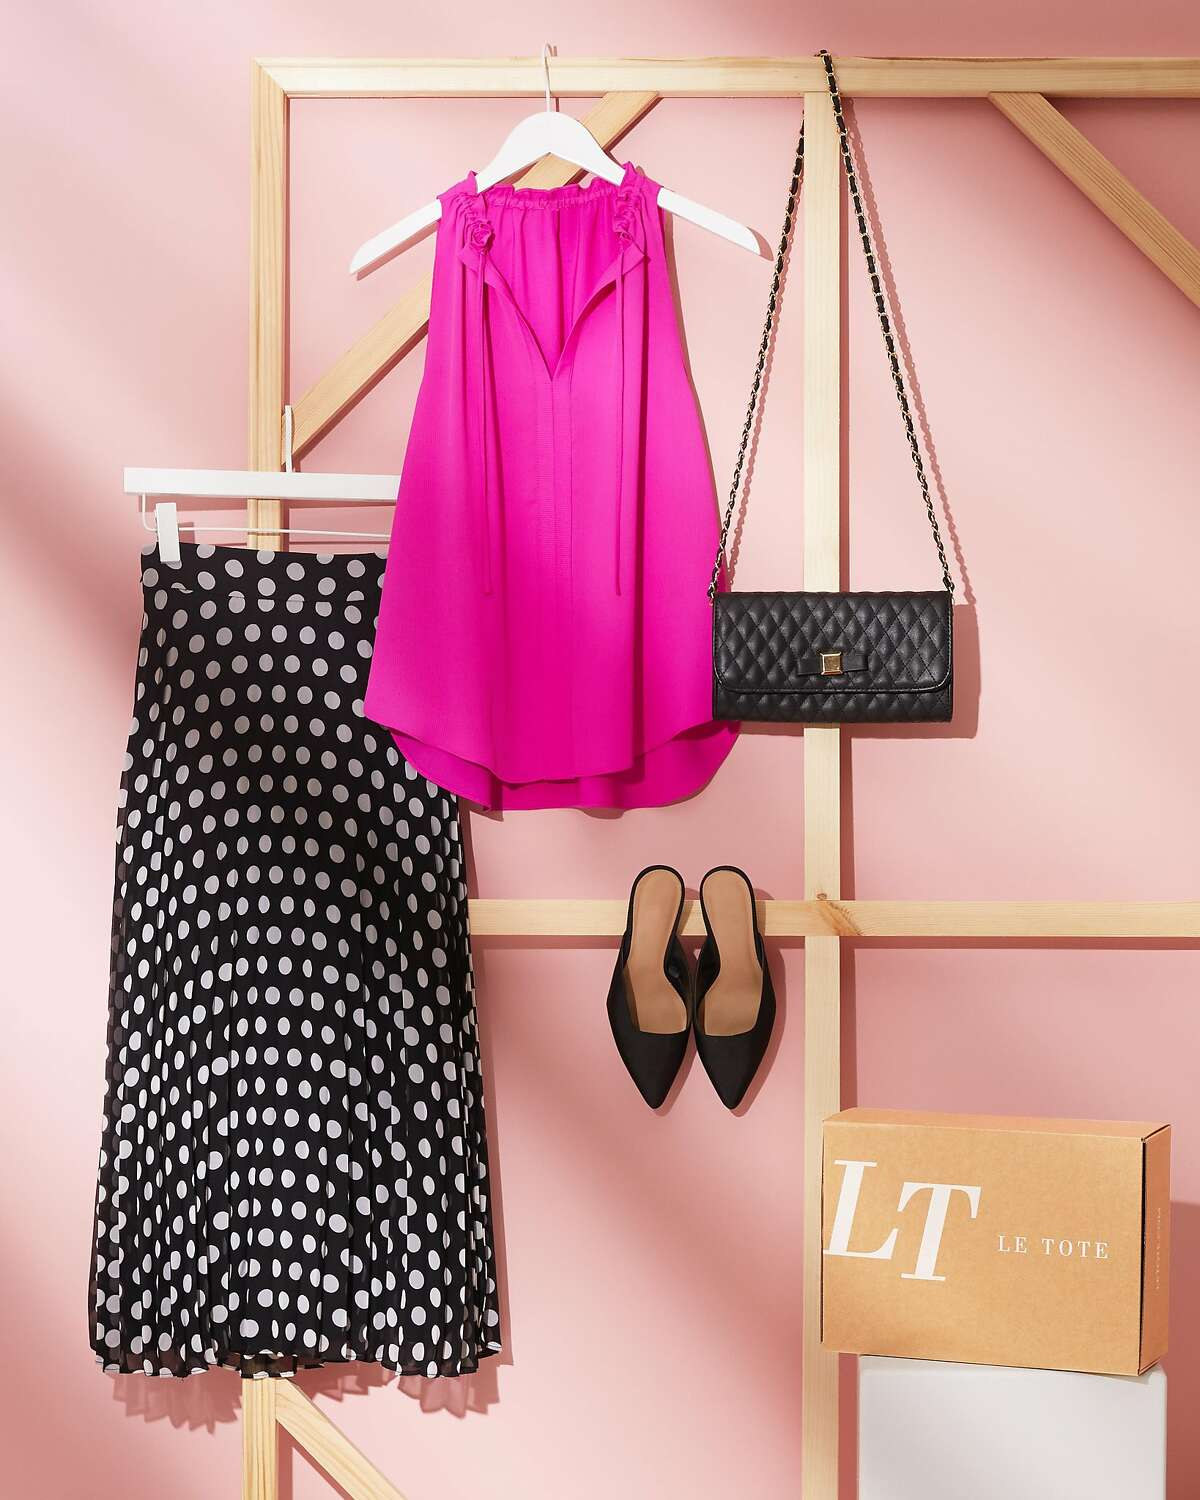 Le Tote, an online rental clothing company curates monthly outfits for its subscribers.